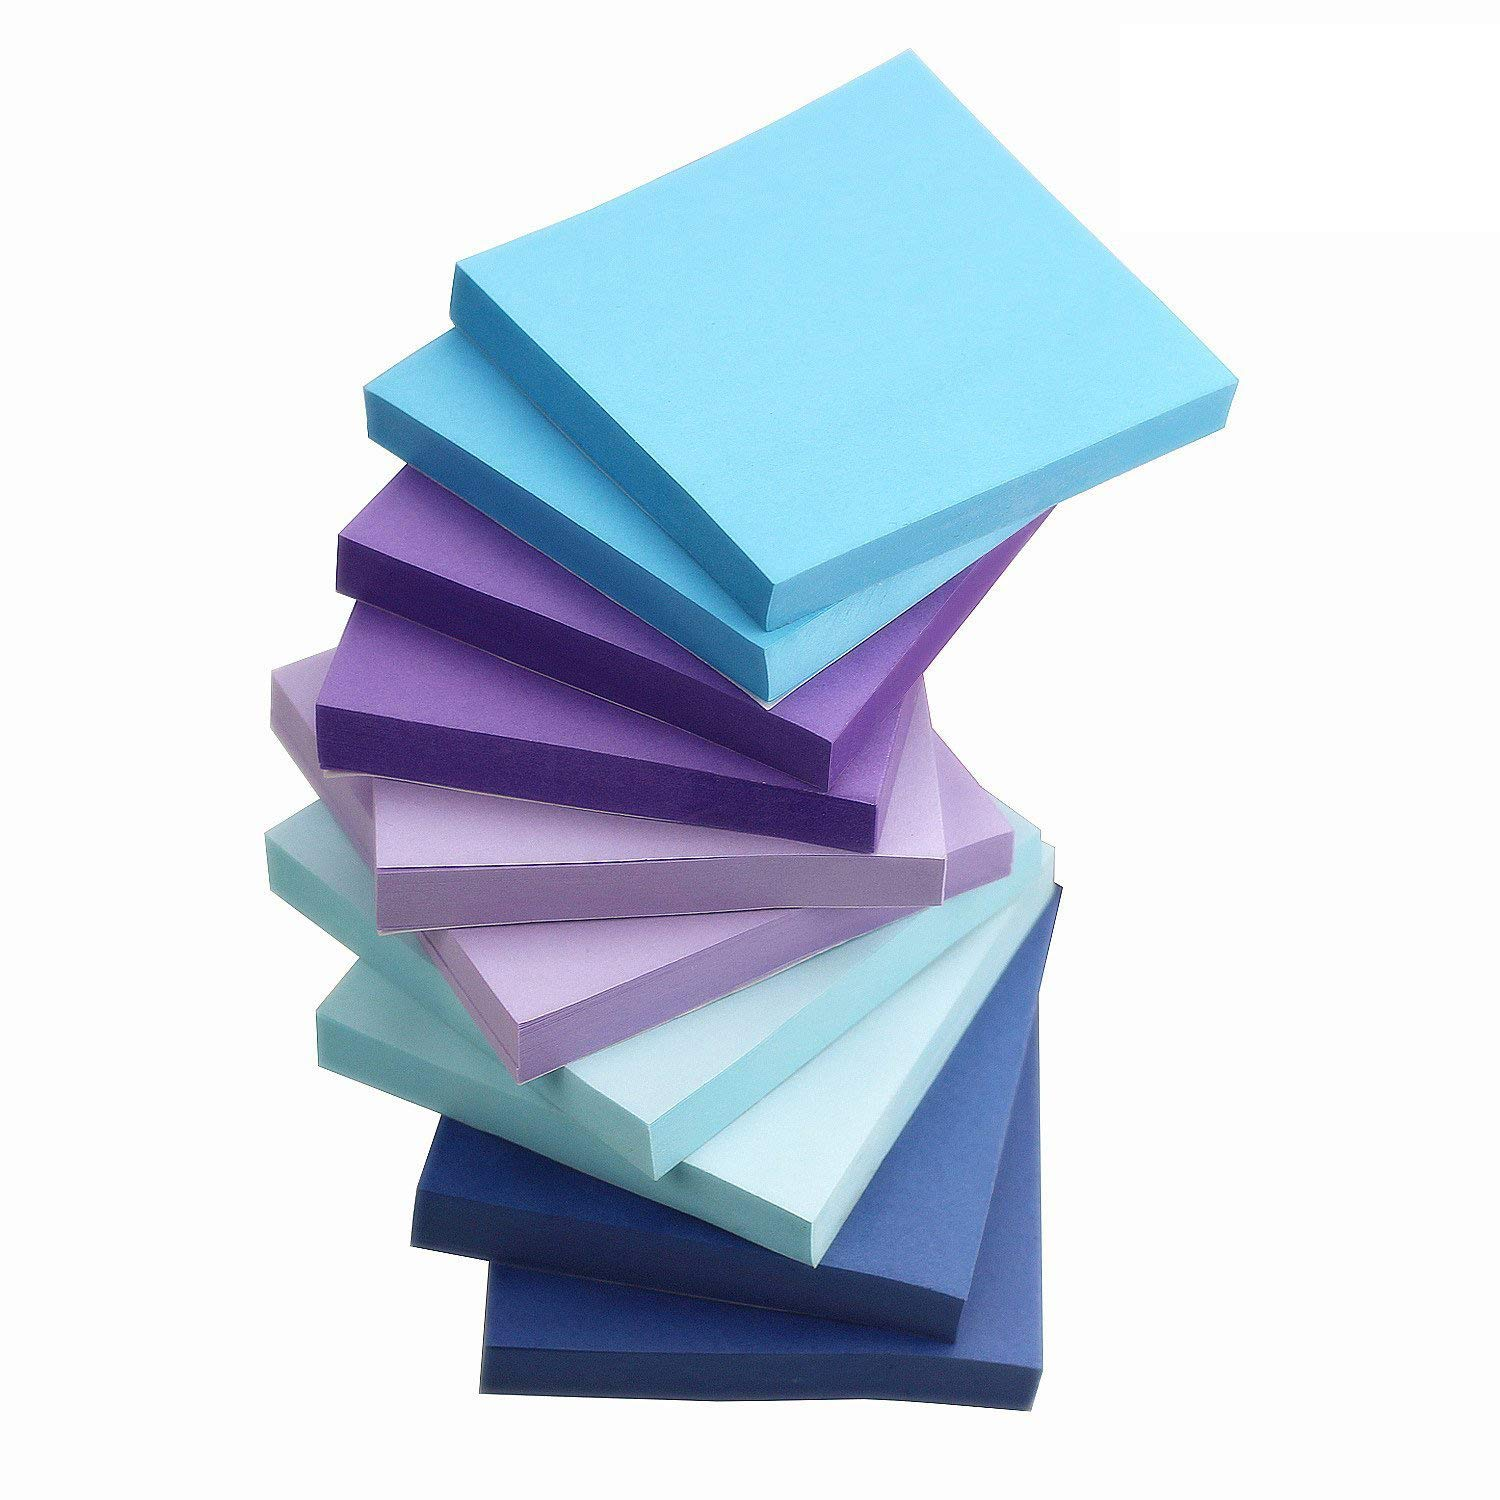 ZZTX Sticky Notes Assorted Watercolor Self-StickNotes 10 Pads/Pack 100Sheets/Pad 3 inch X 3 inch Easy Post - Sticky Issue Is Improved